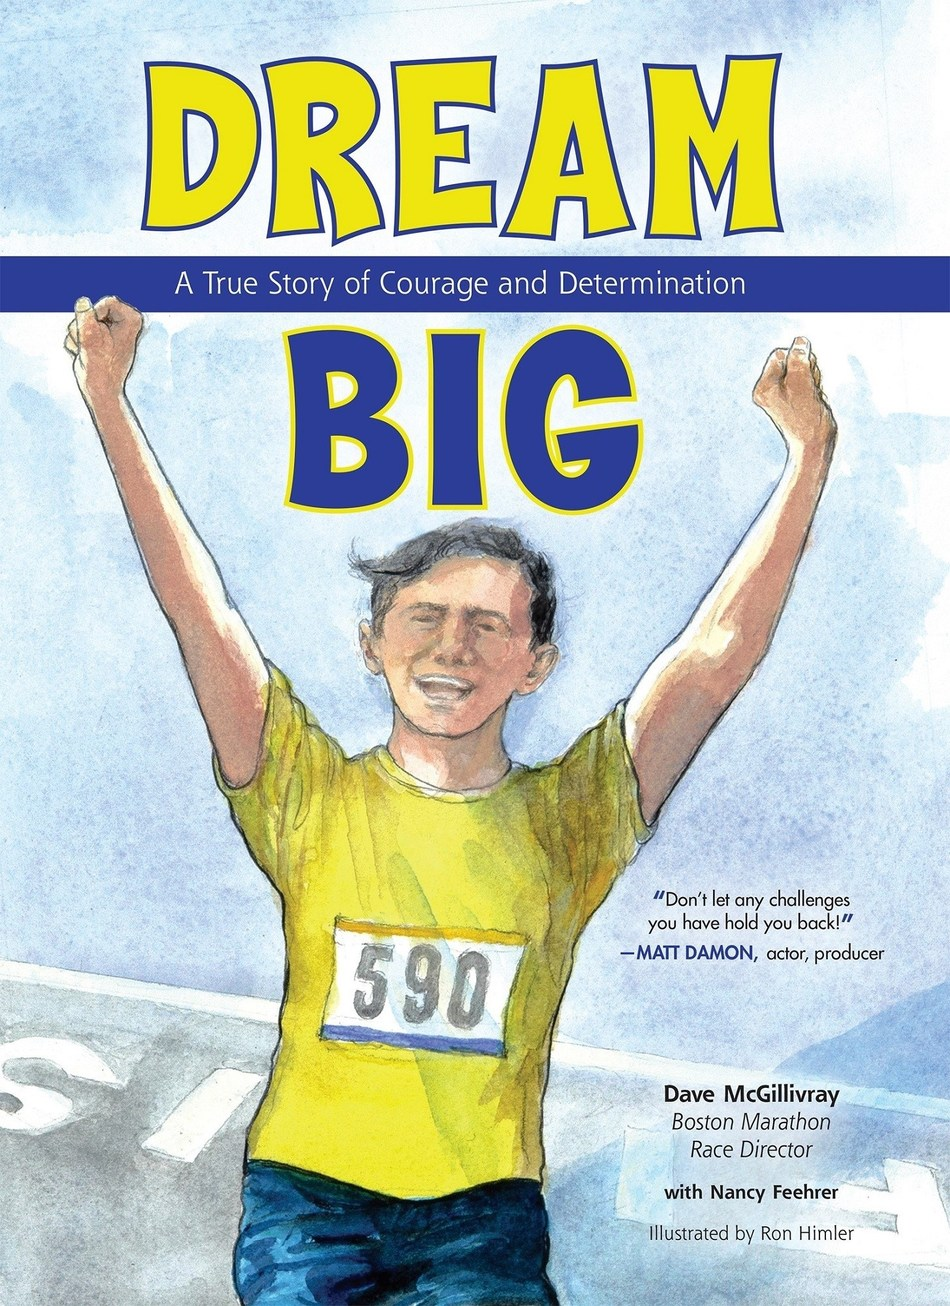 Boston Marathon Race Director Dave McGillivray has run the marathon 45 times, directed it for 30 years and run across the country for charity. This year, he's also written a children's book.